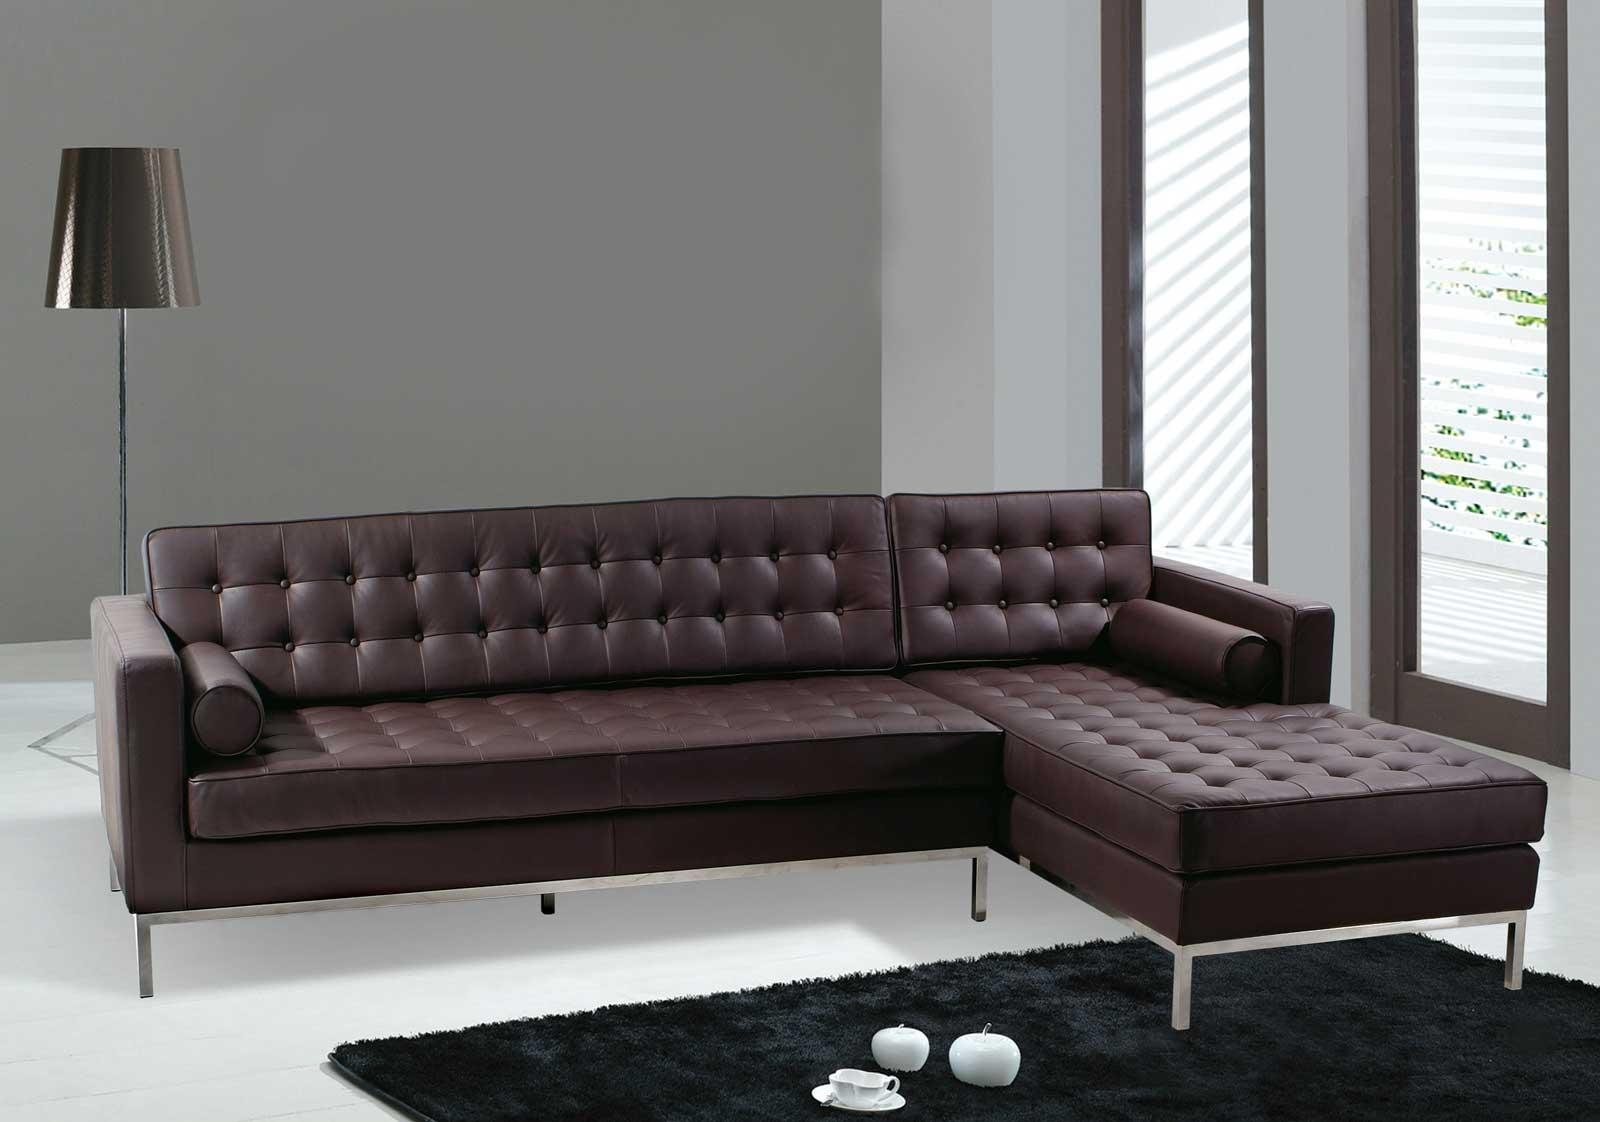 Furniture : Italian Sofa With White Tone With Artistic Long Bowl With Long Modern Sofas (View 7 of 20)